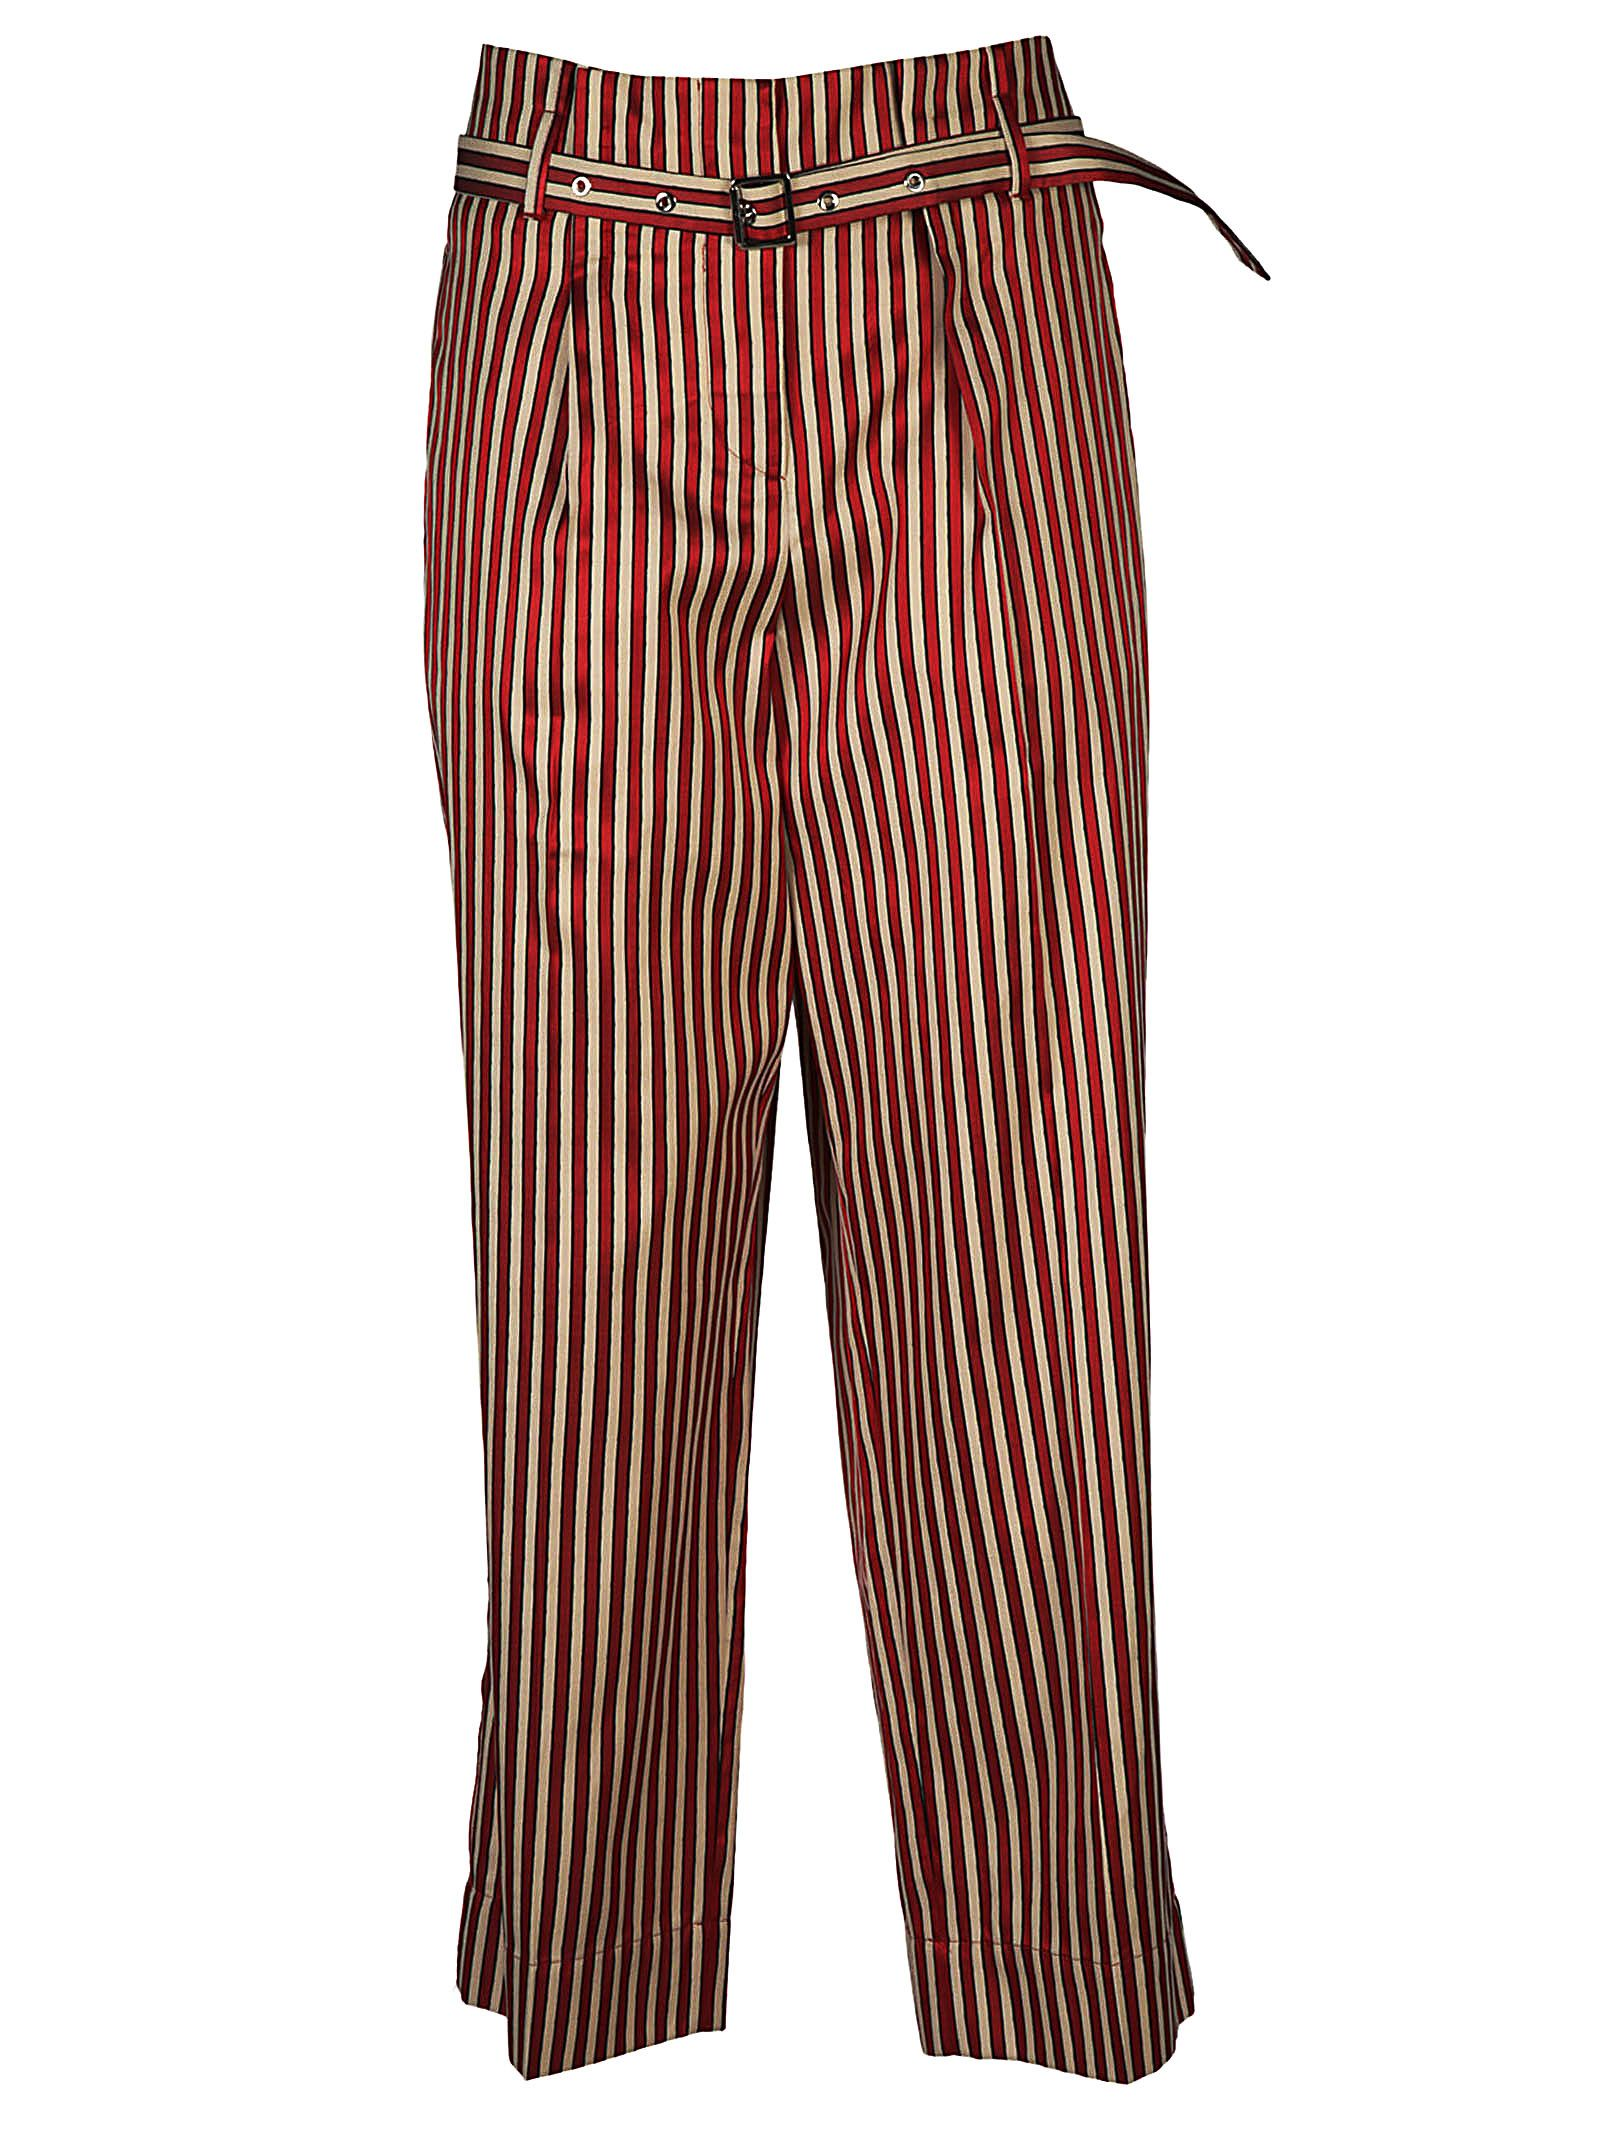 high-waisted striped trousers - Red Giorgio Armani CnFmdCHA0T